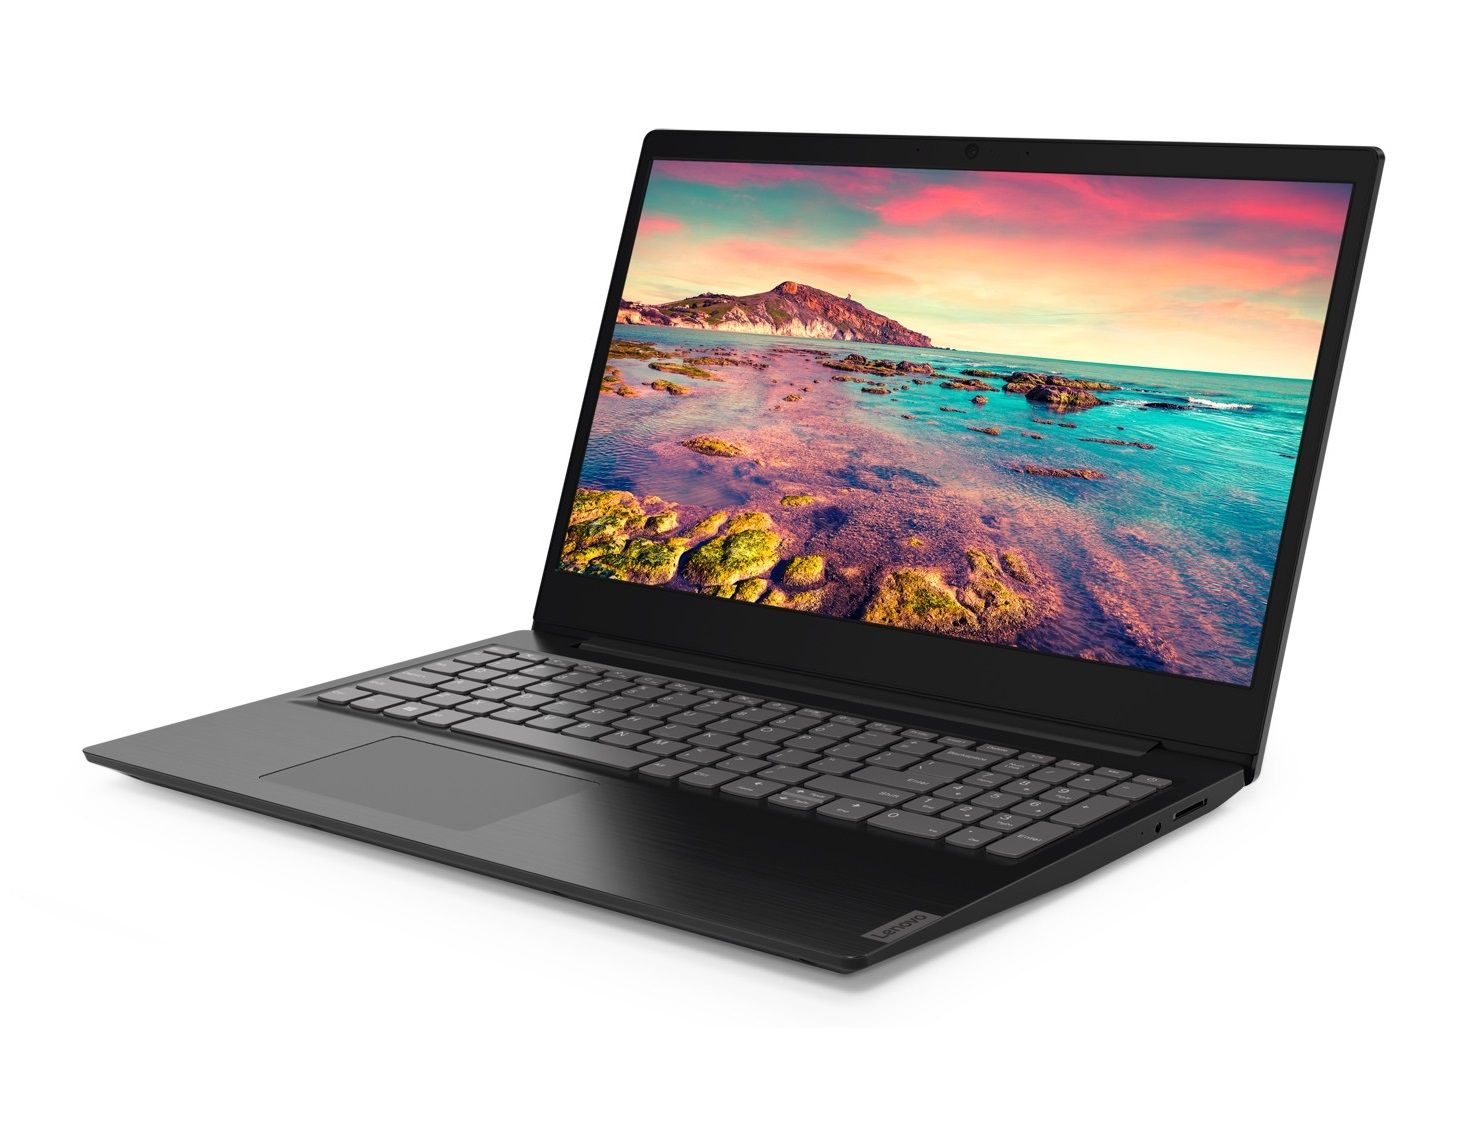 Lenovo Ideapad S145 81w80096iv 15 6 I5 1035g1 8gb 256gb Ssd Dos Built To Last Engineered For Long Lasting Perfor In 2020 Lenovo Ideapad Lenovo Lenovo Laptop